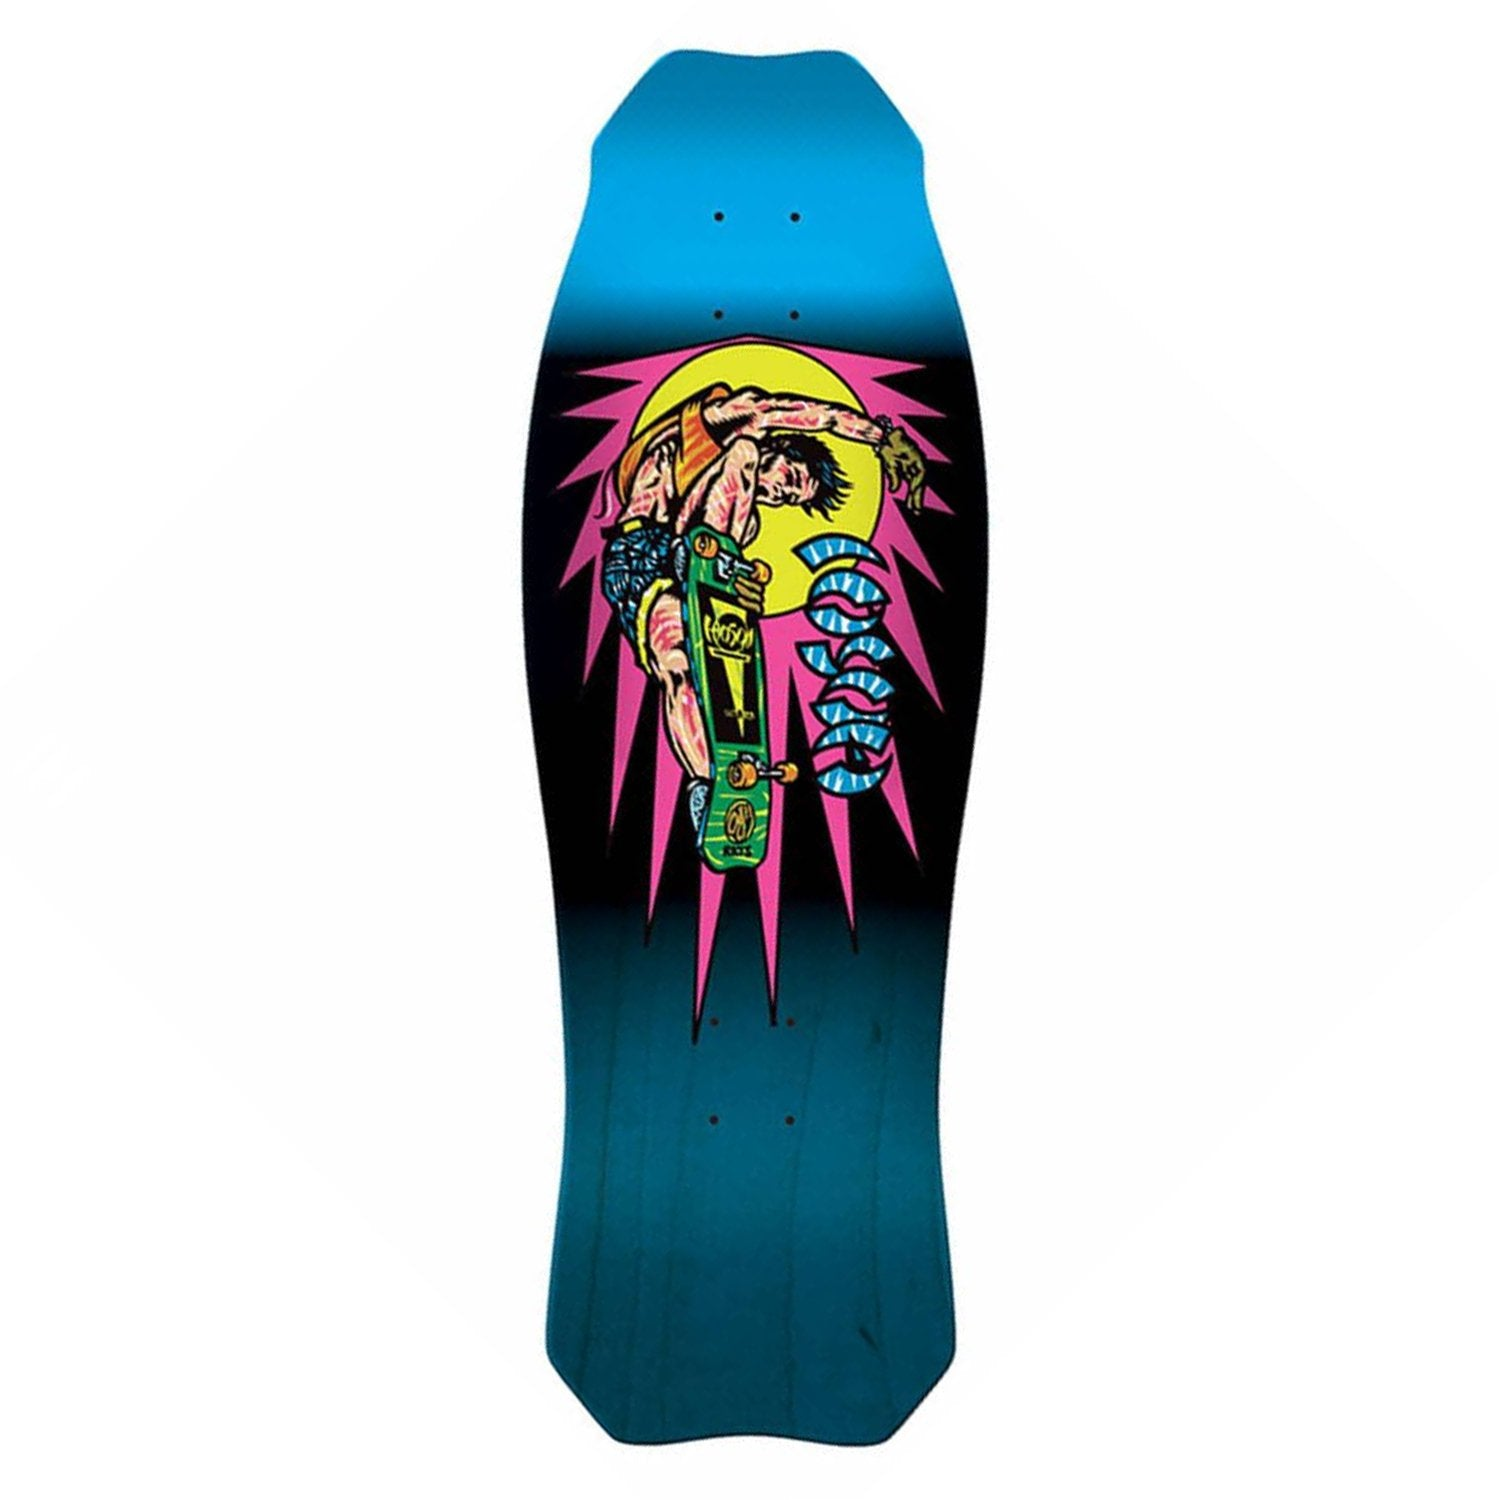 Santa Cruz Hosoi Rocket Air Mini Reissue Deck Product Photo #1